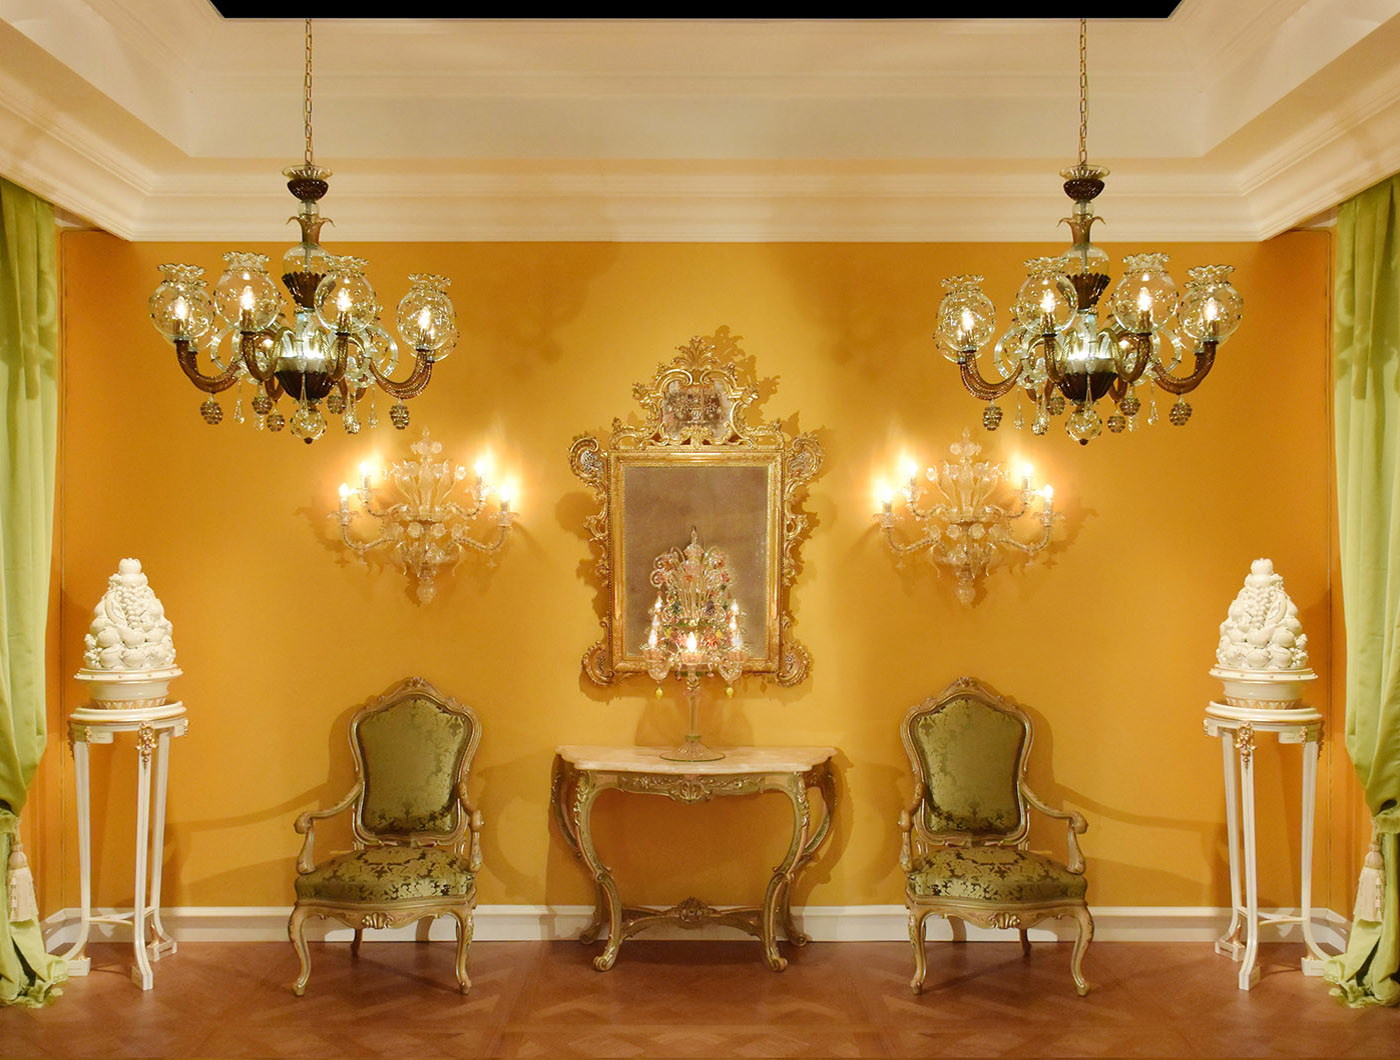 Venetian baroque throne, Venetian gilt ancient mirror, Murano applique, Murano chandeliere, Murano flambeau | P.& G. Cugini Lanzani